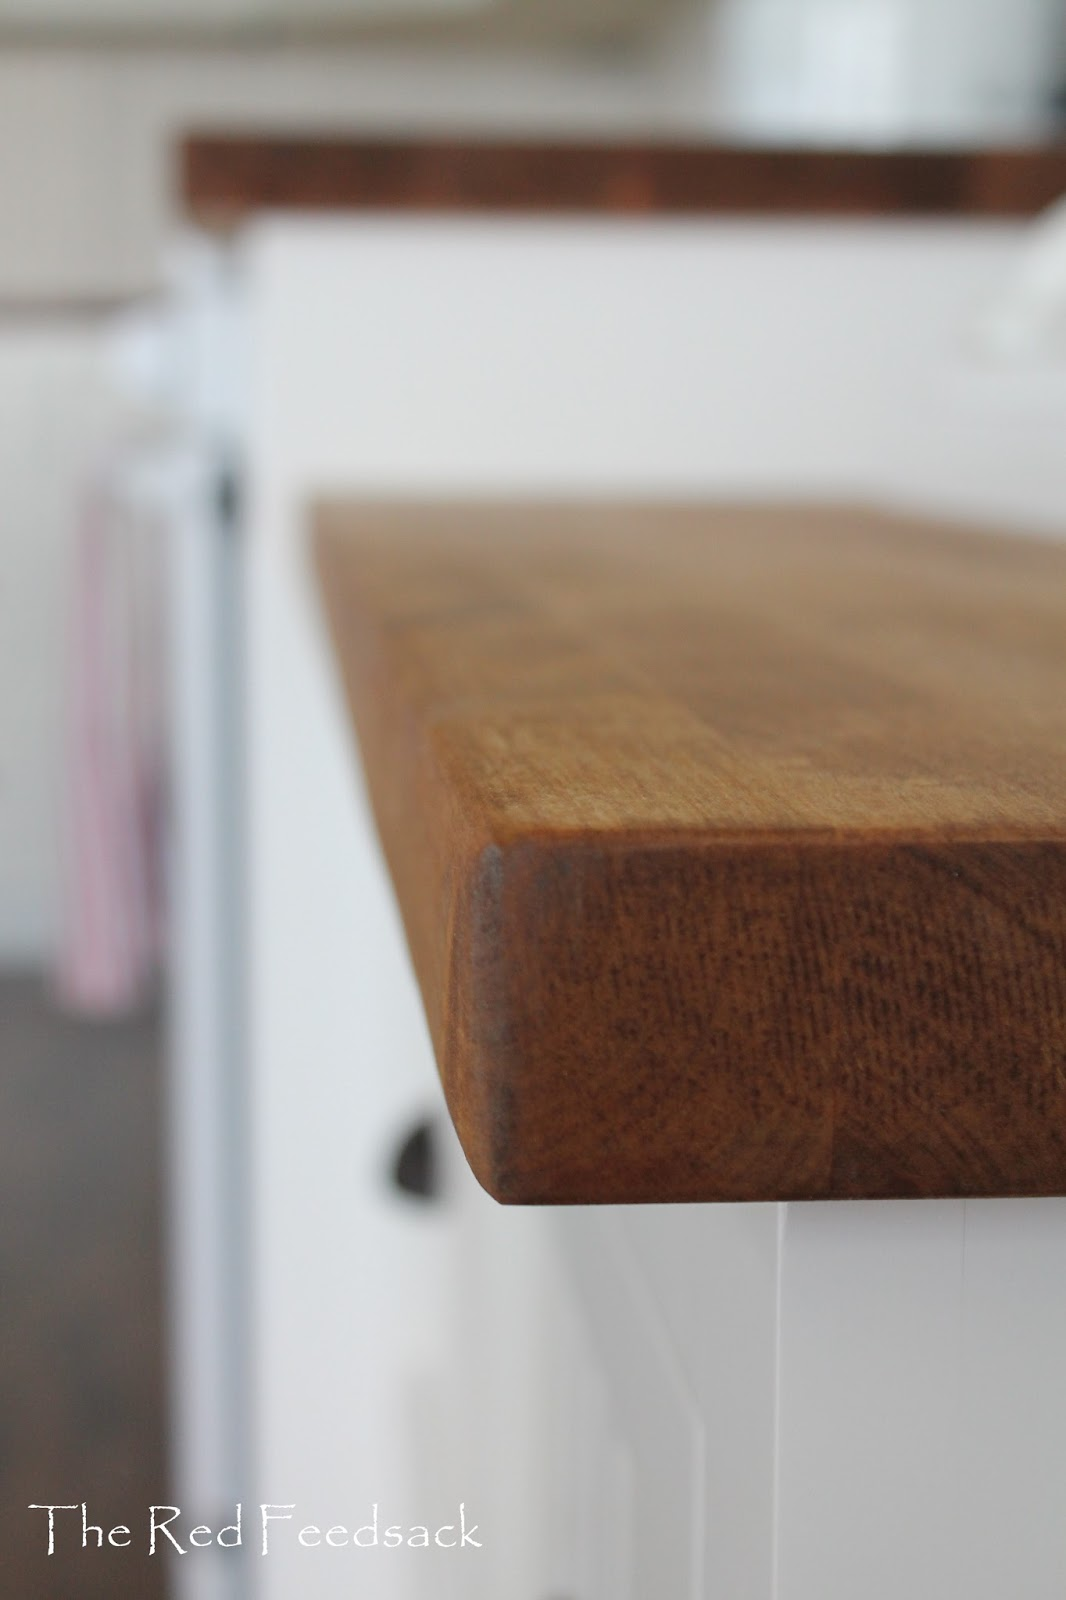 Tung Oil For Butcher Block Countertops The Red Feedsack Butcher Block Counter Tops